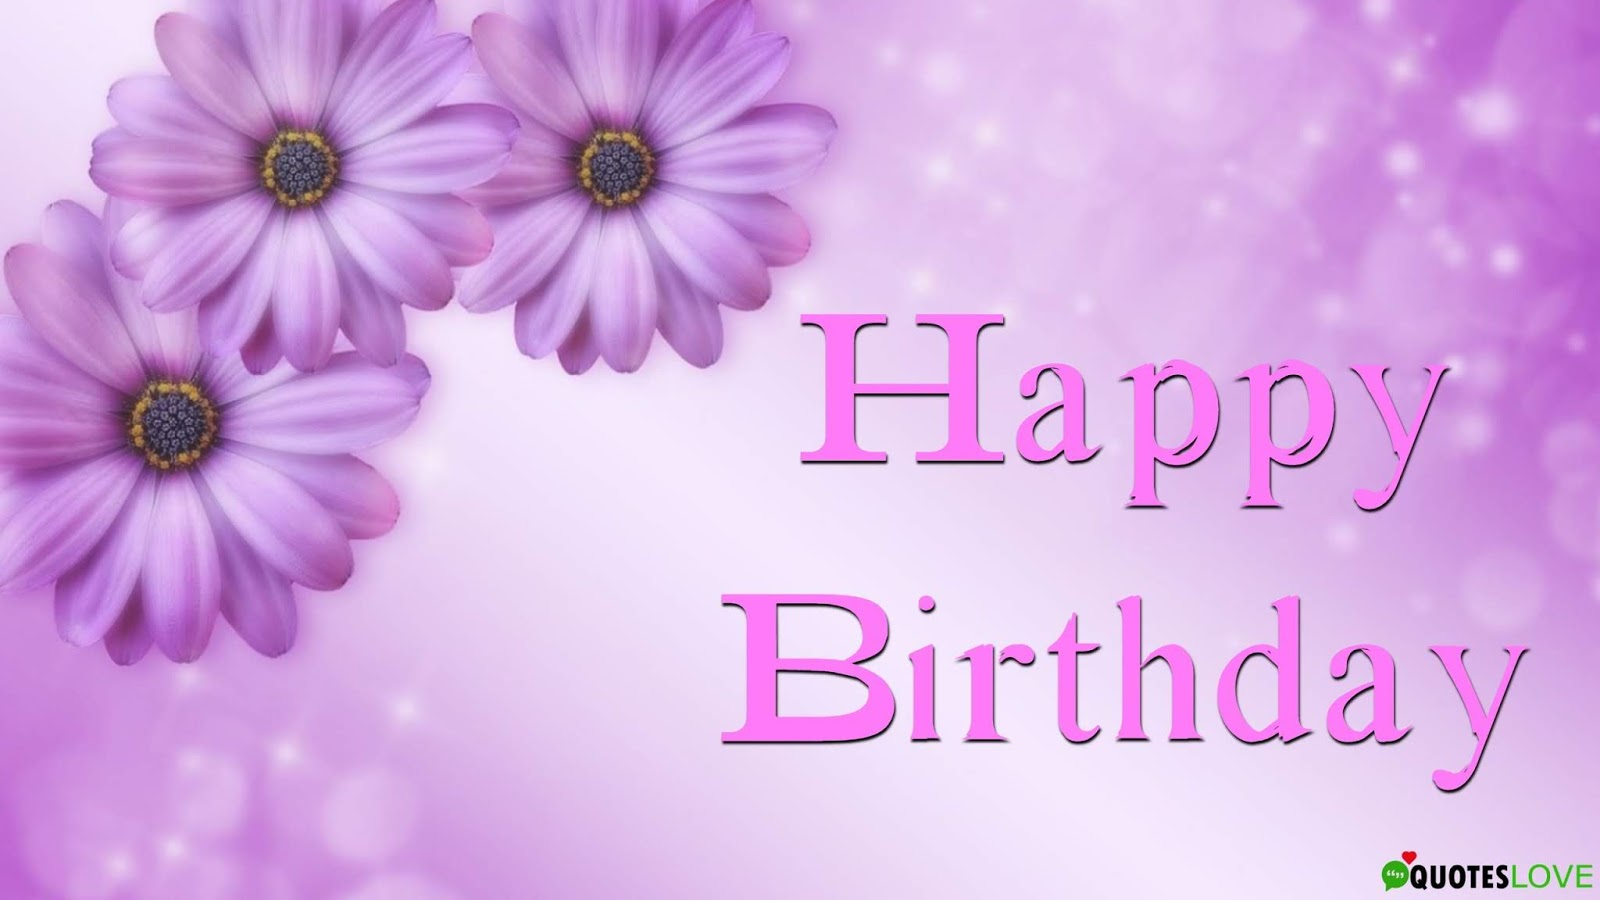 Happy Birthday Images For Her Free